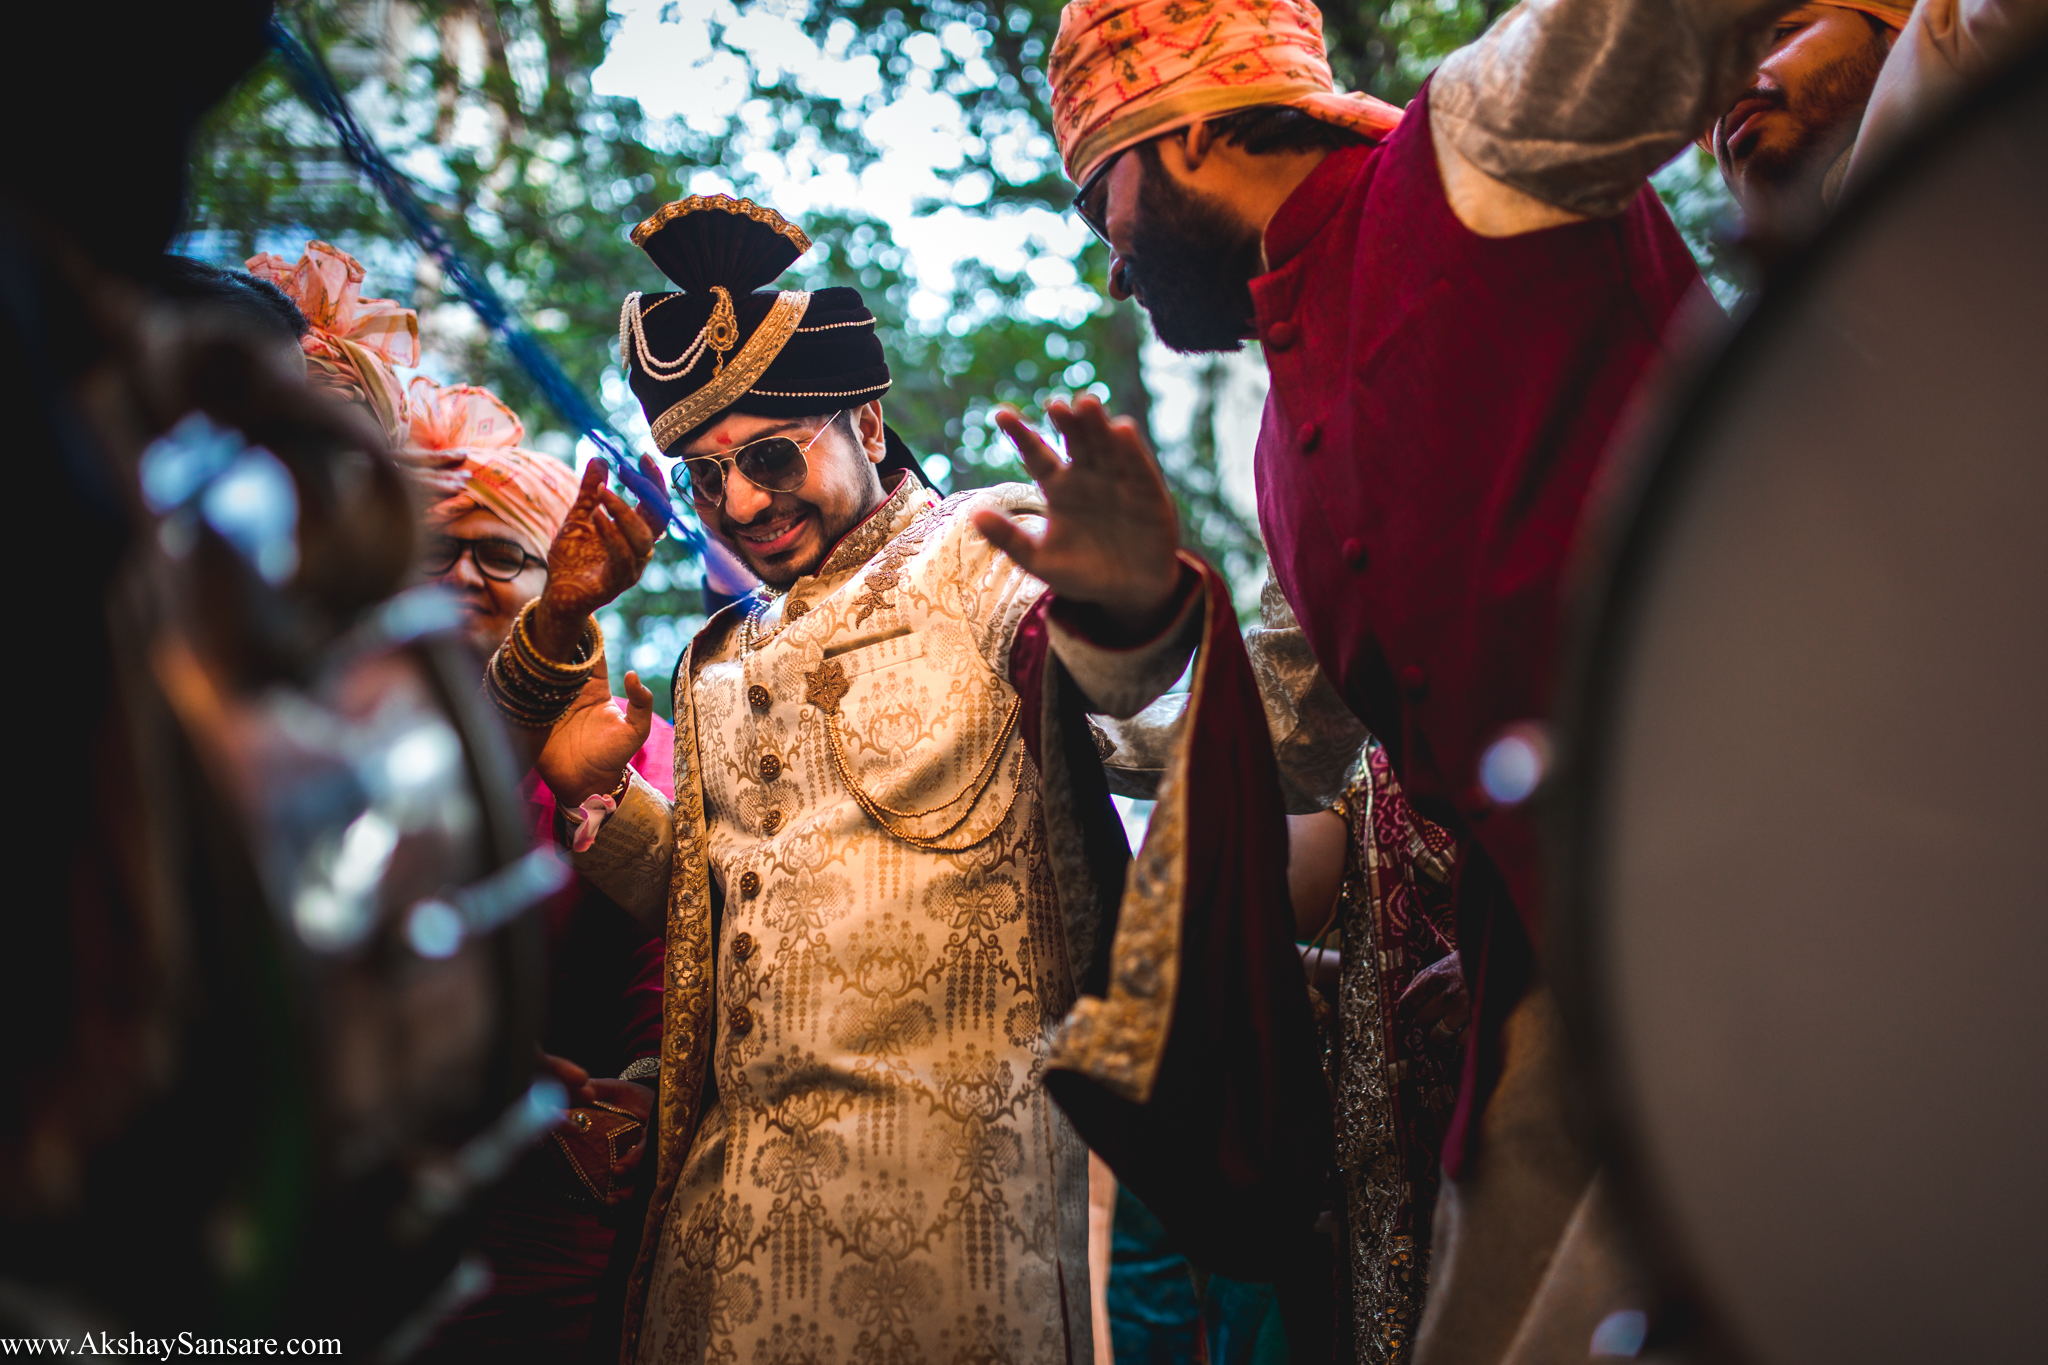 Nupur & Rohan wedding Akshay Sansare Photography best wedding photographer in mumbai India Candid(36).jpg